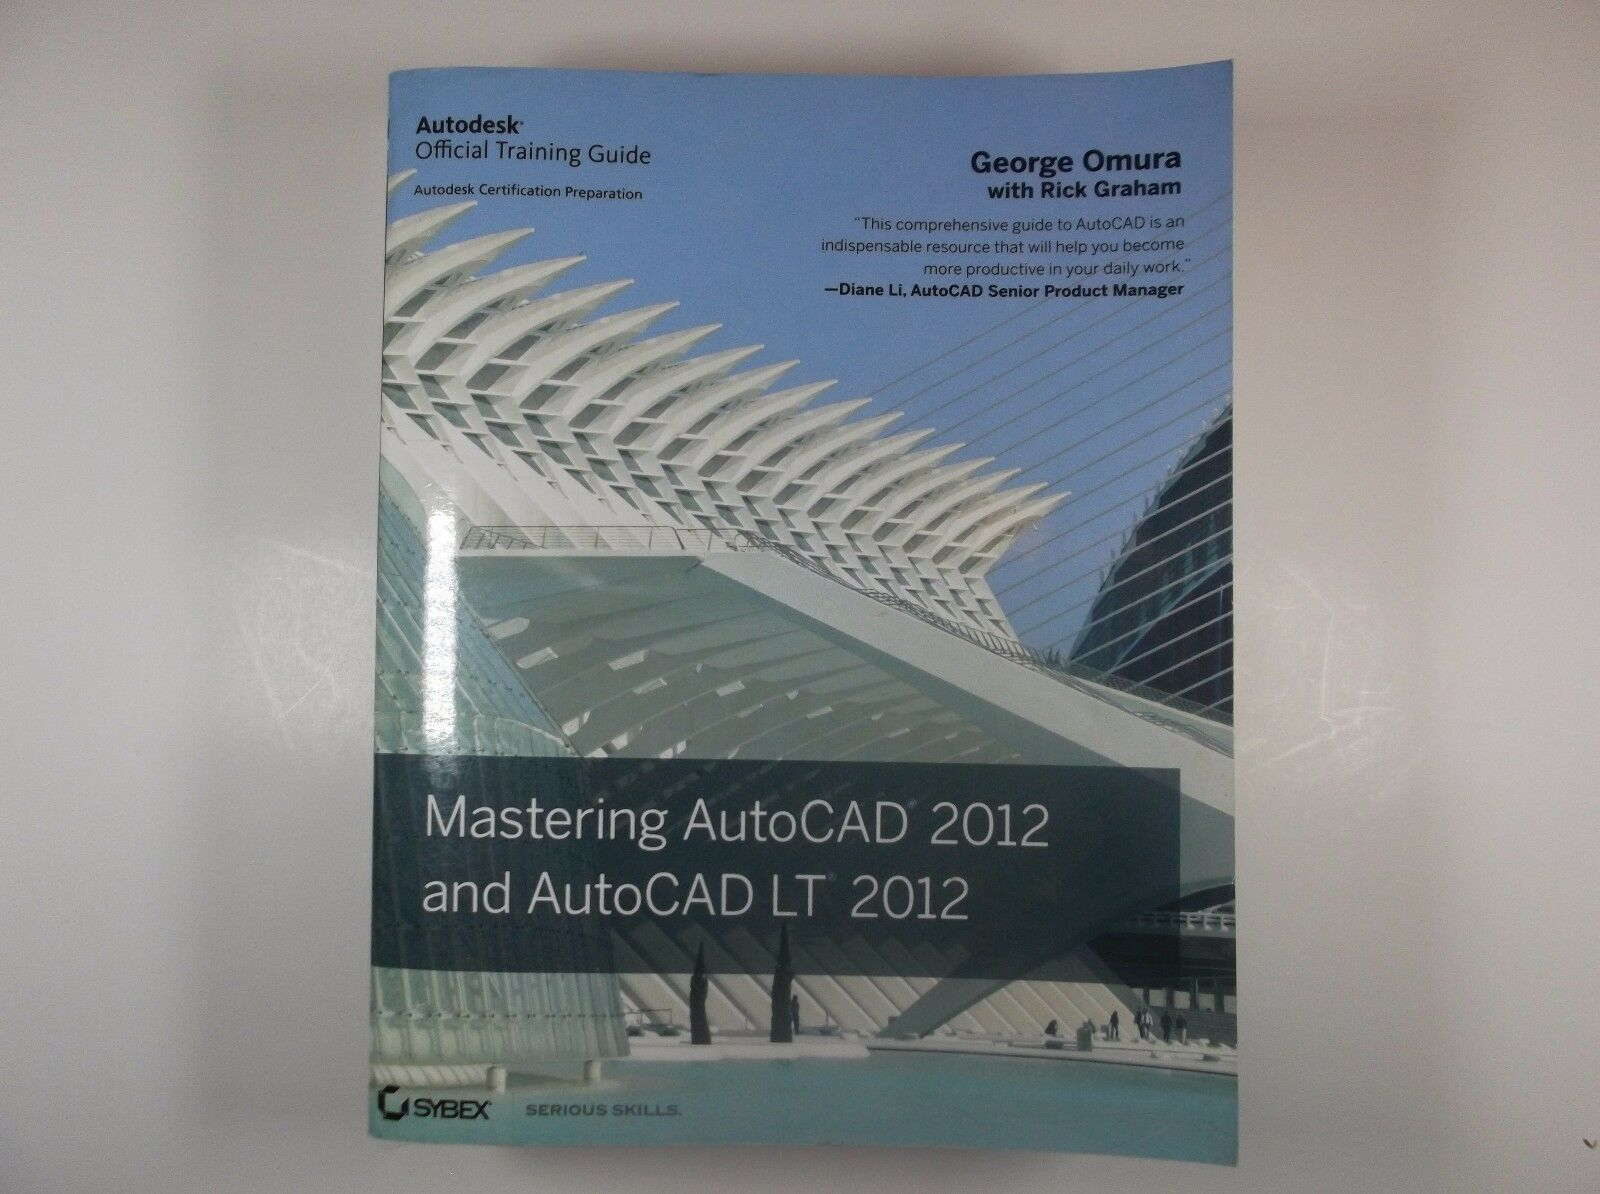 mastering autocad 2012 and autocad lt 2012 by george omura 2011 rh ebay com AutoCAD Instruction Manual AutoCAD LT Manual